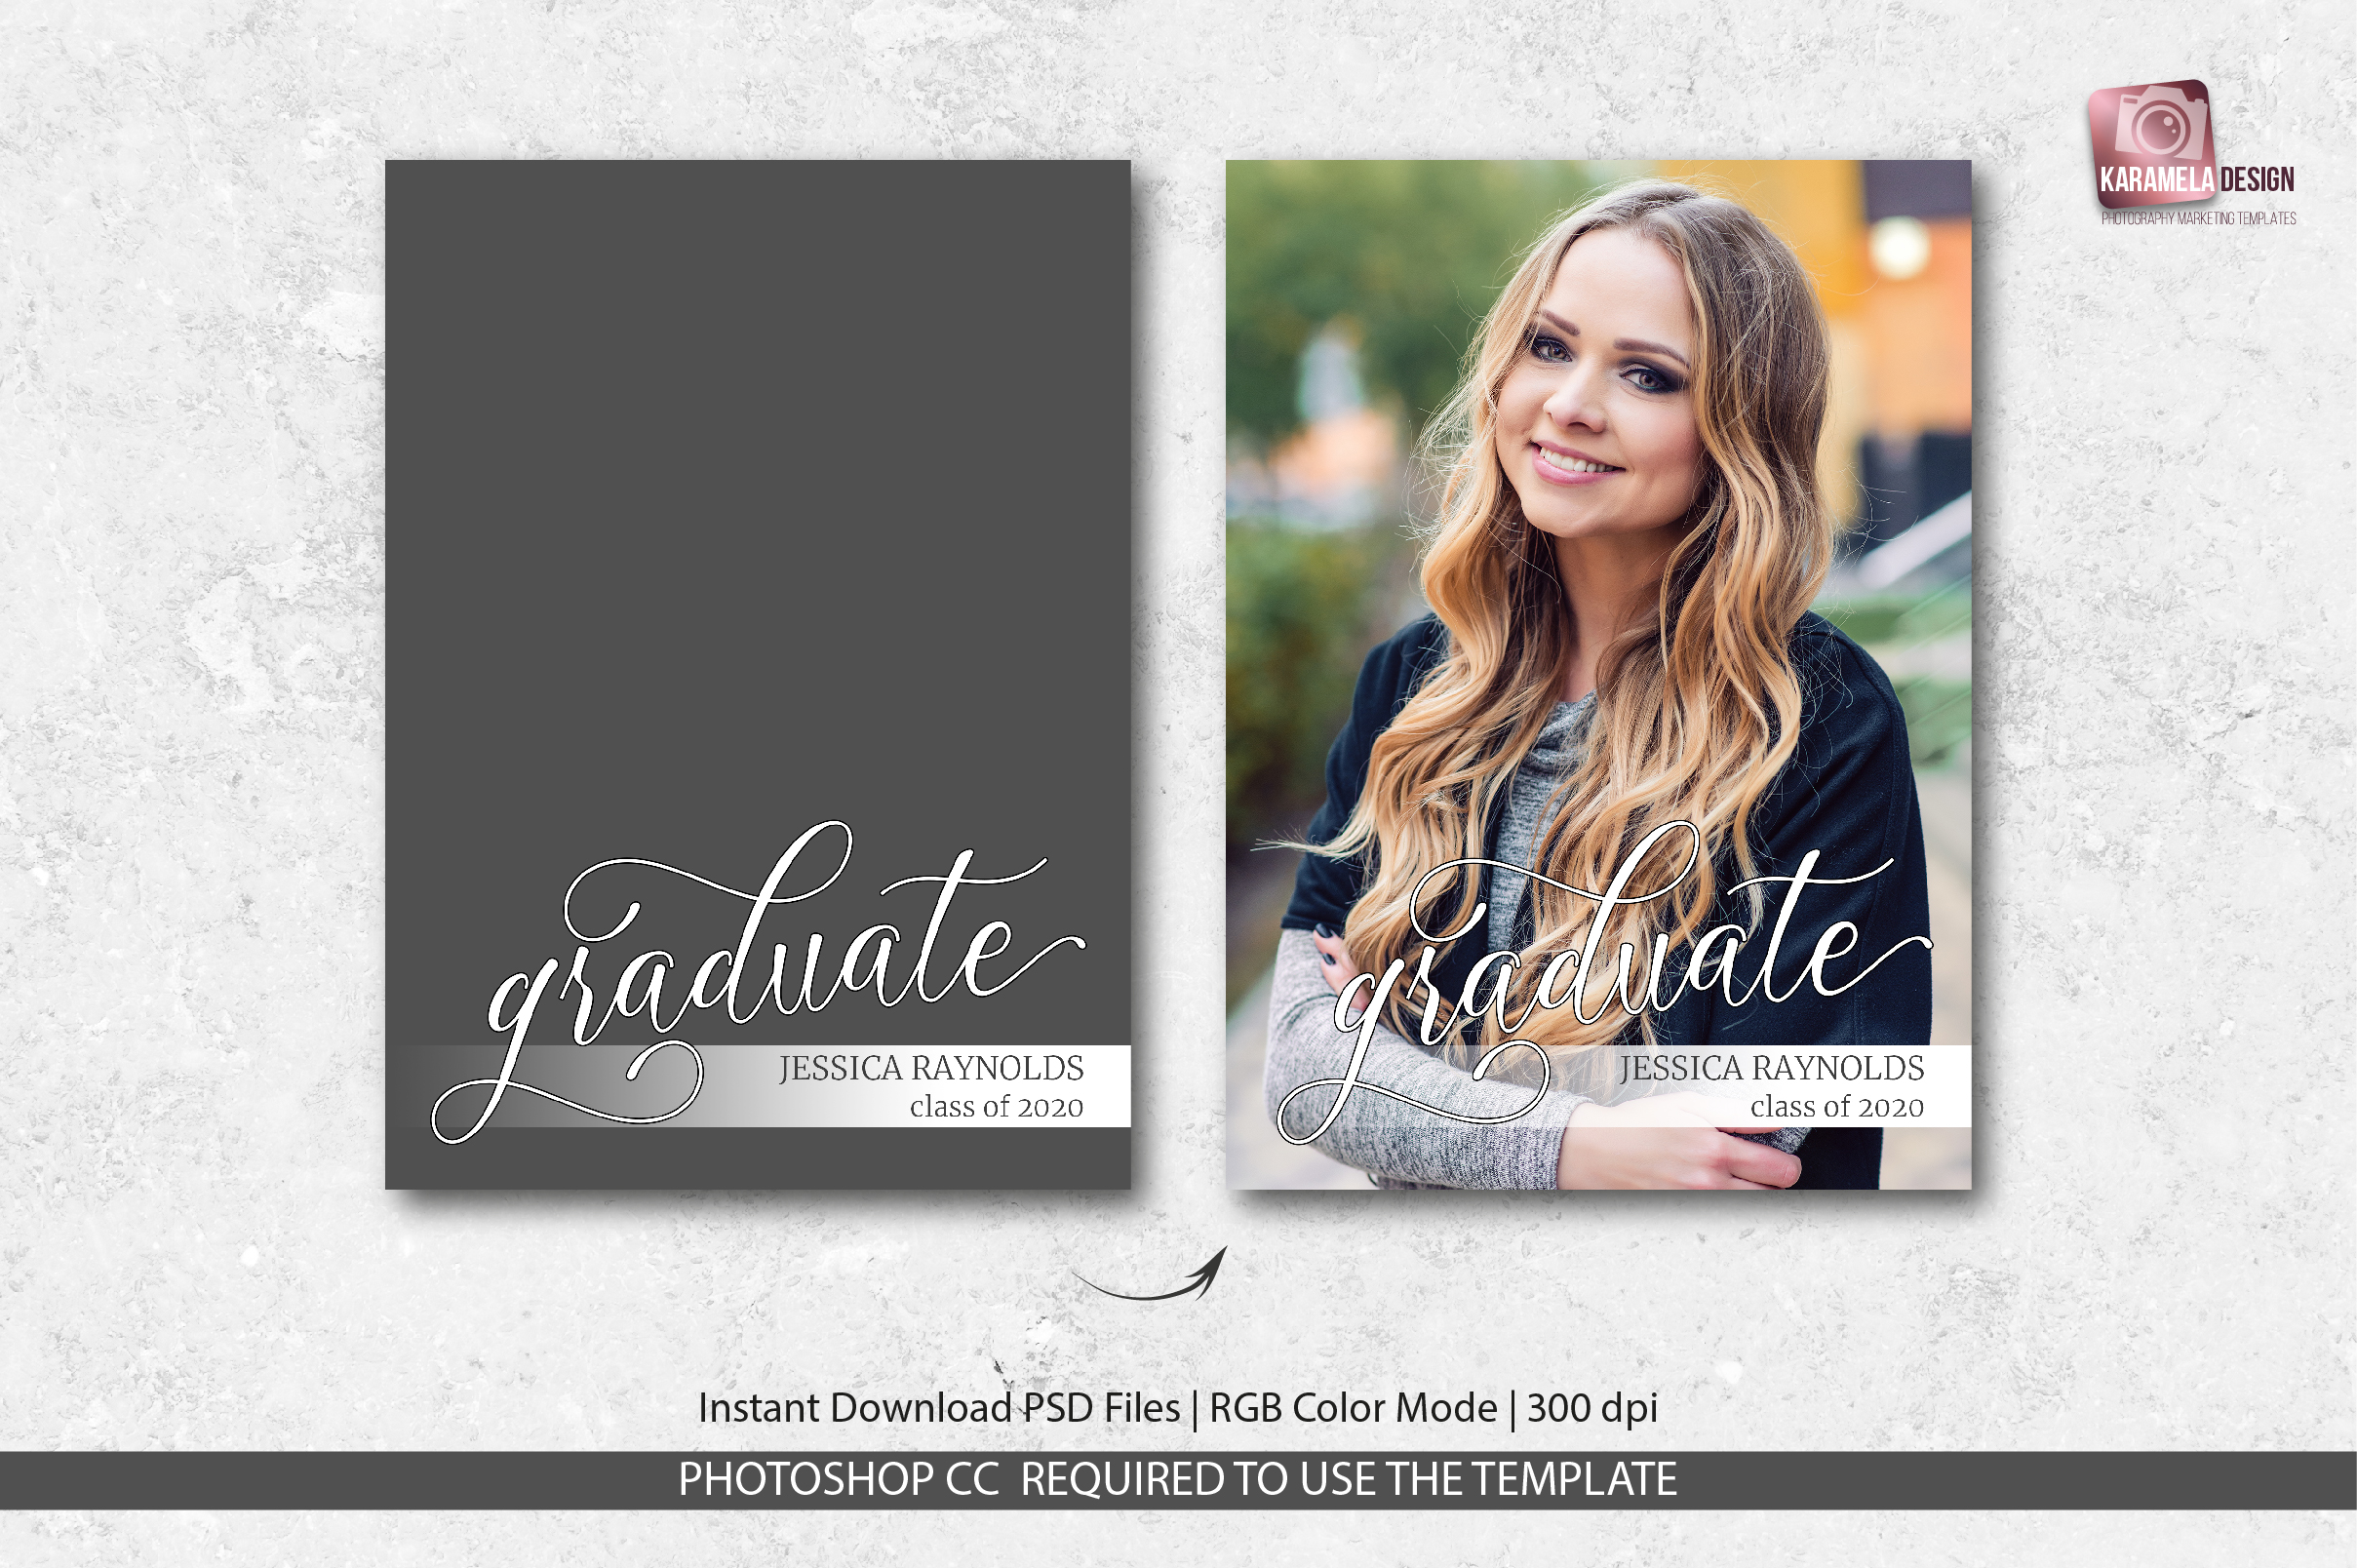 Graduation Announcement Template example image 2